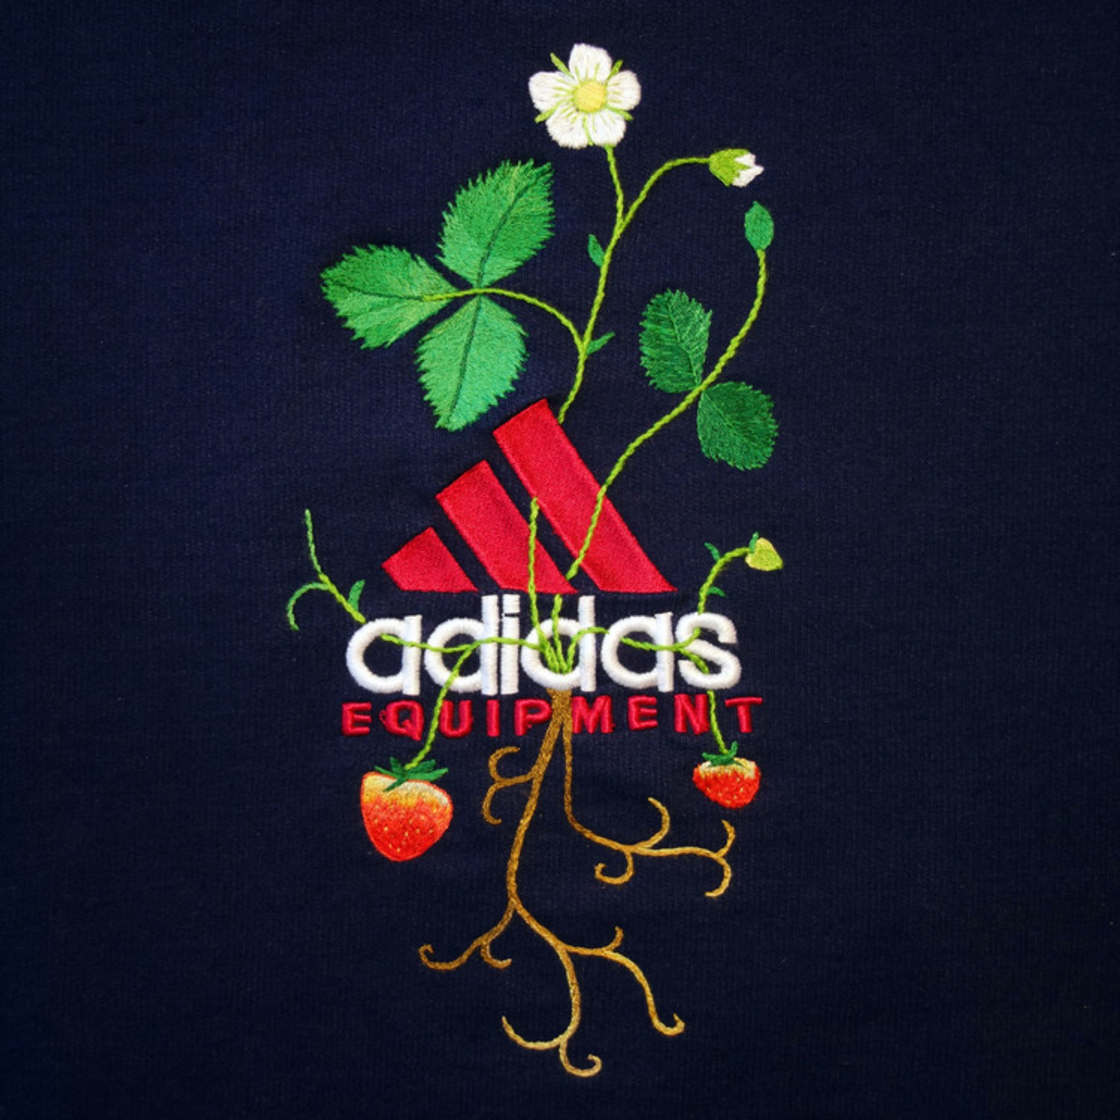 Embroidering flowers over the logos of famous brands